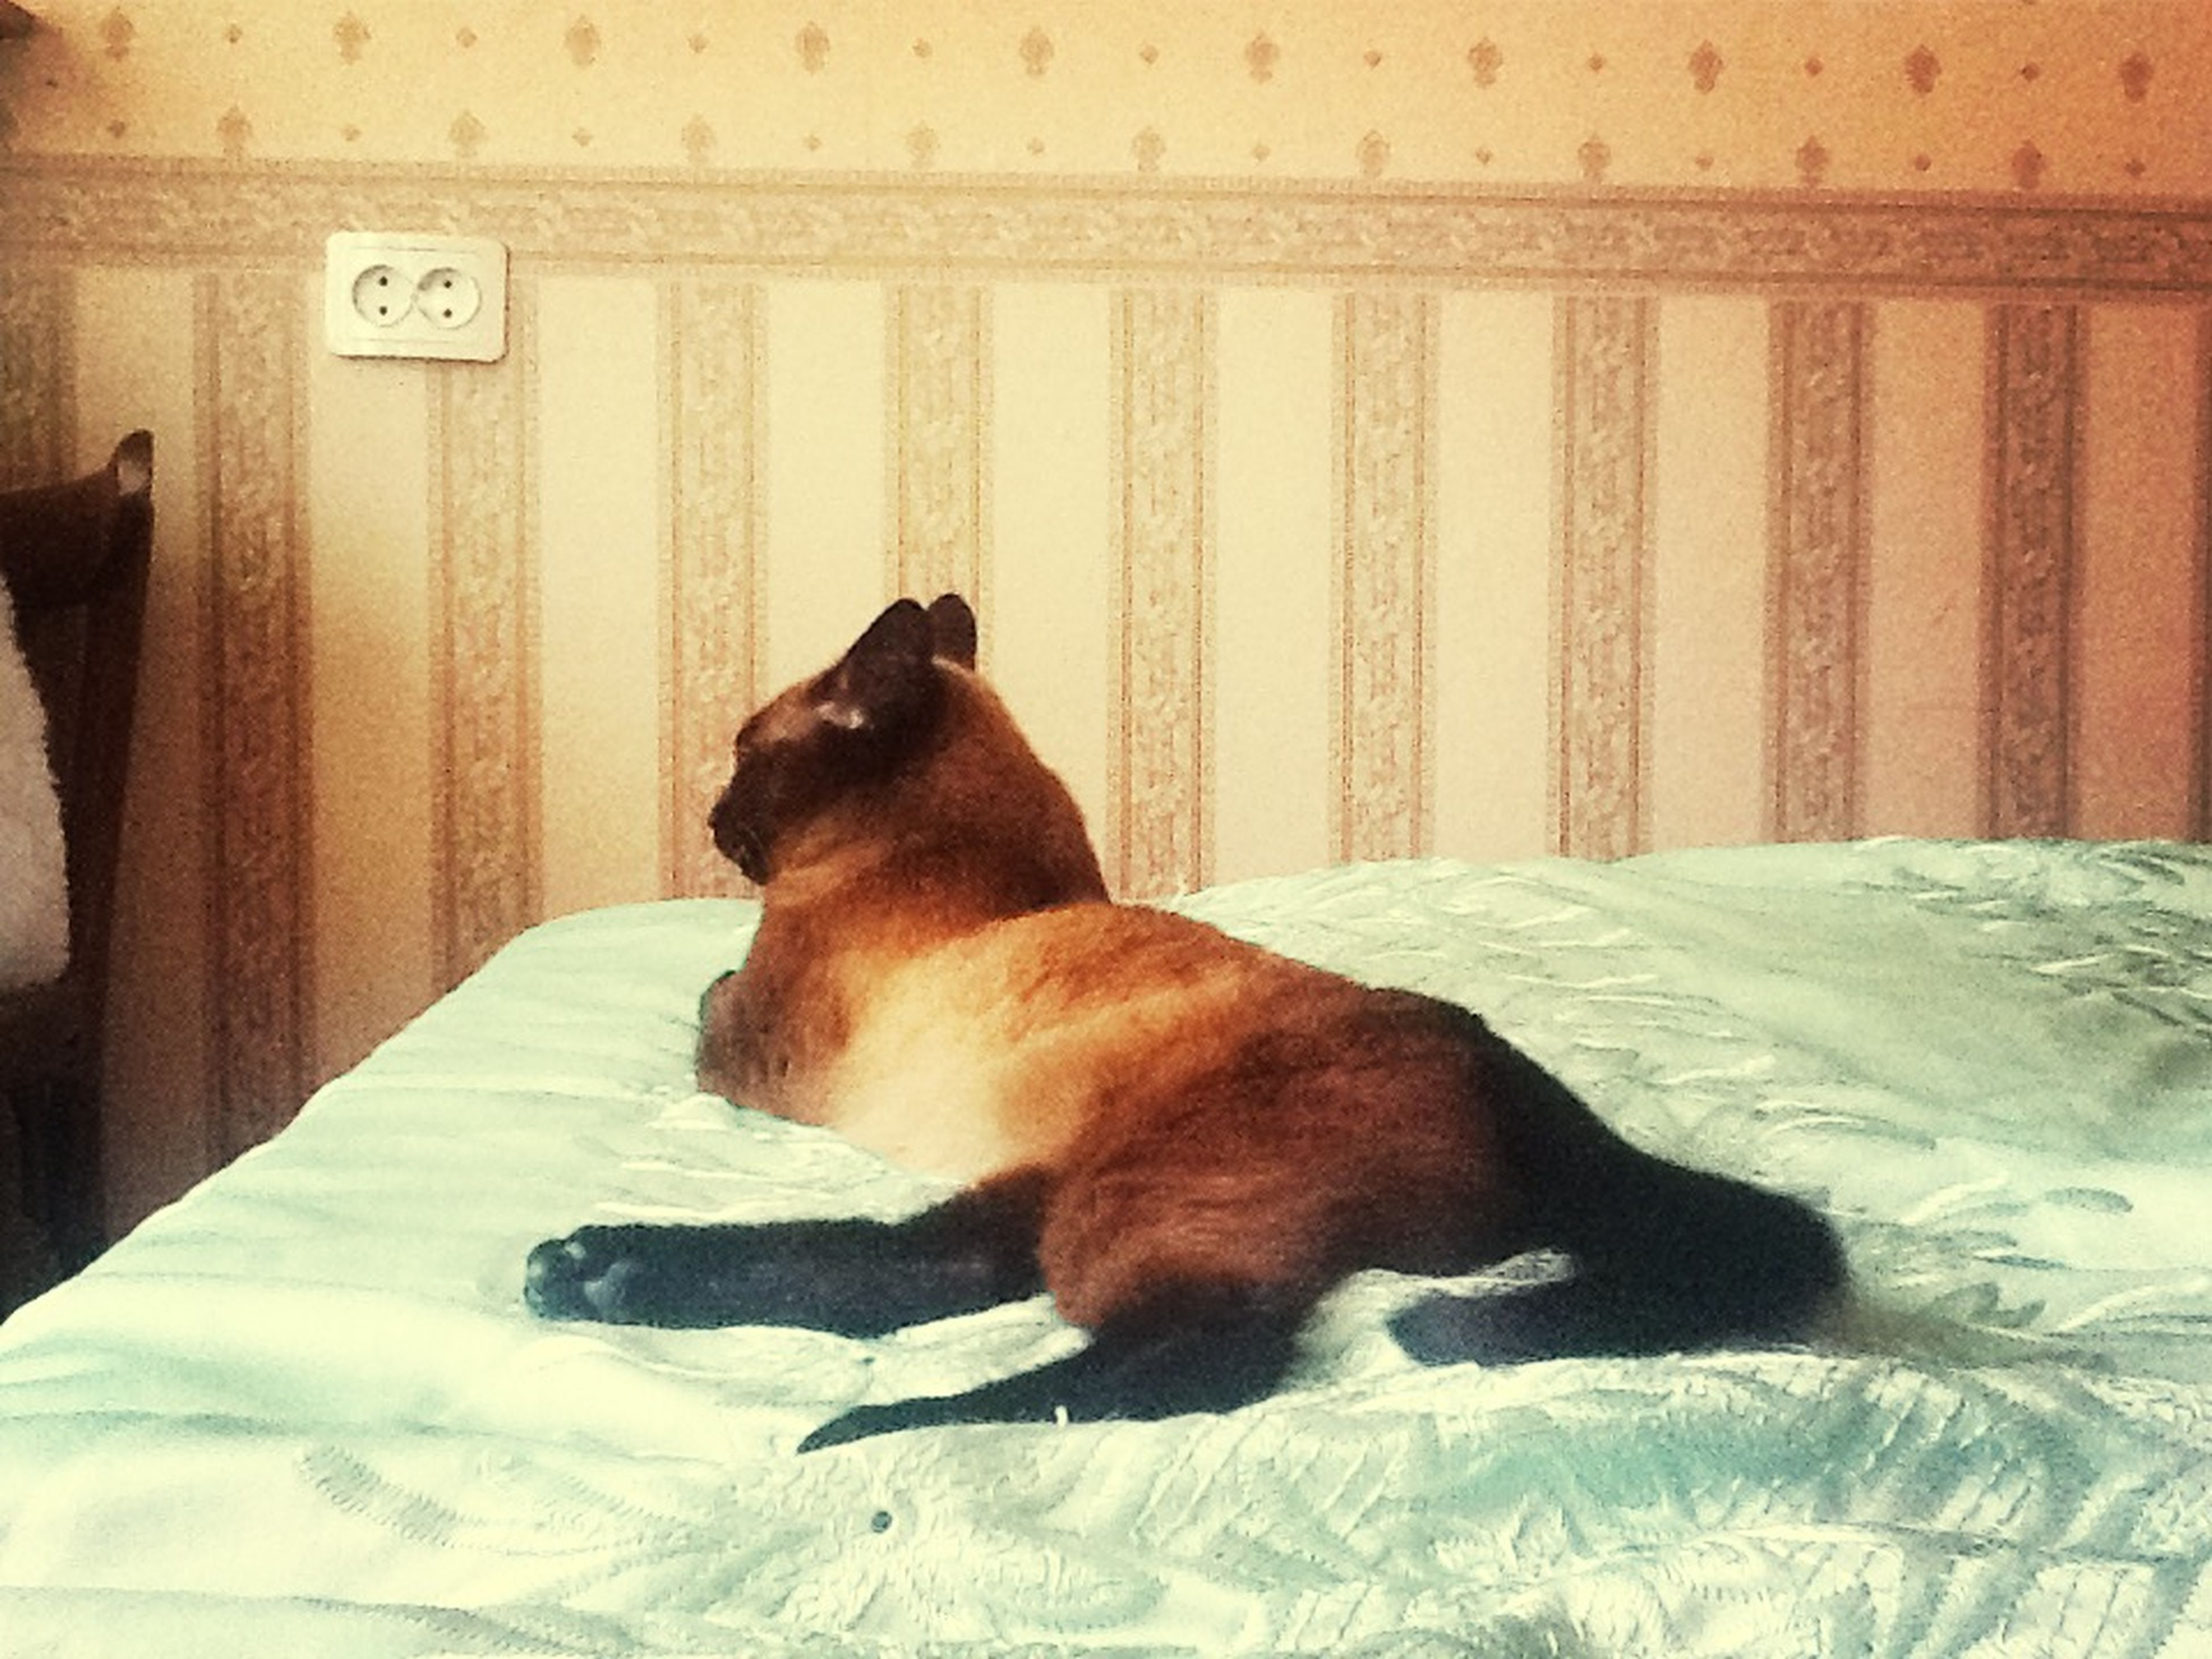 domestic animals, pets, animal themes, mammal, one animal, dog, indoors, relaxation, pet collar, zoology, brown, no people, home interior, domestic cat, animal head, looking away, cat, animal, resting, side view